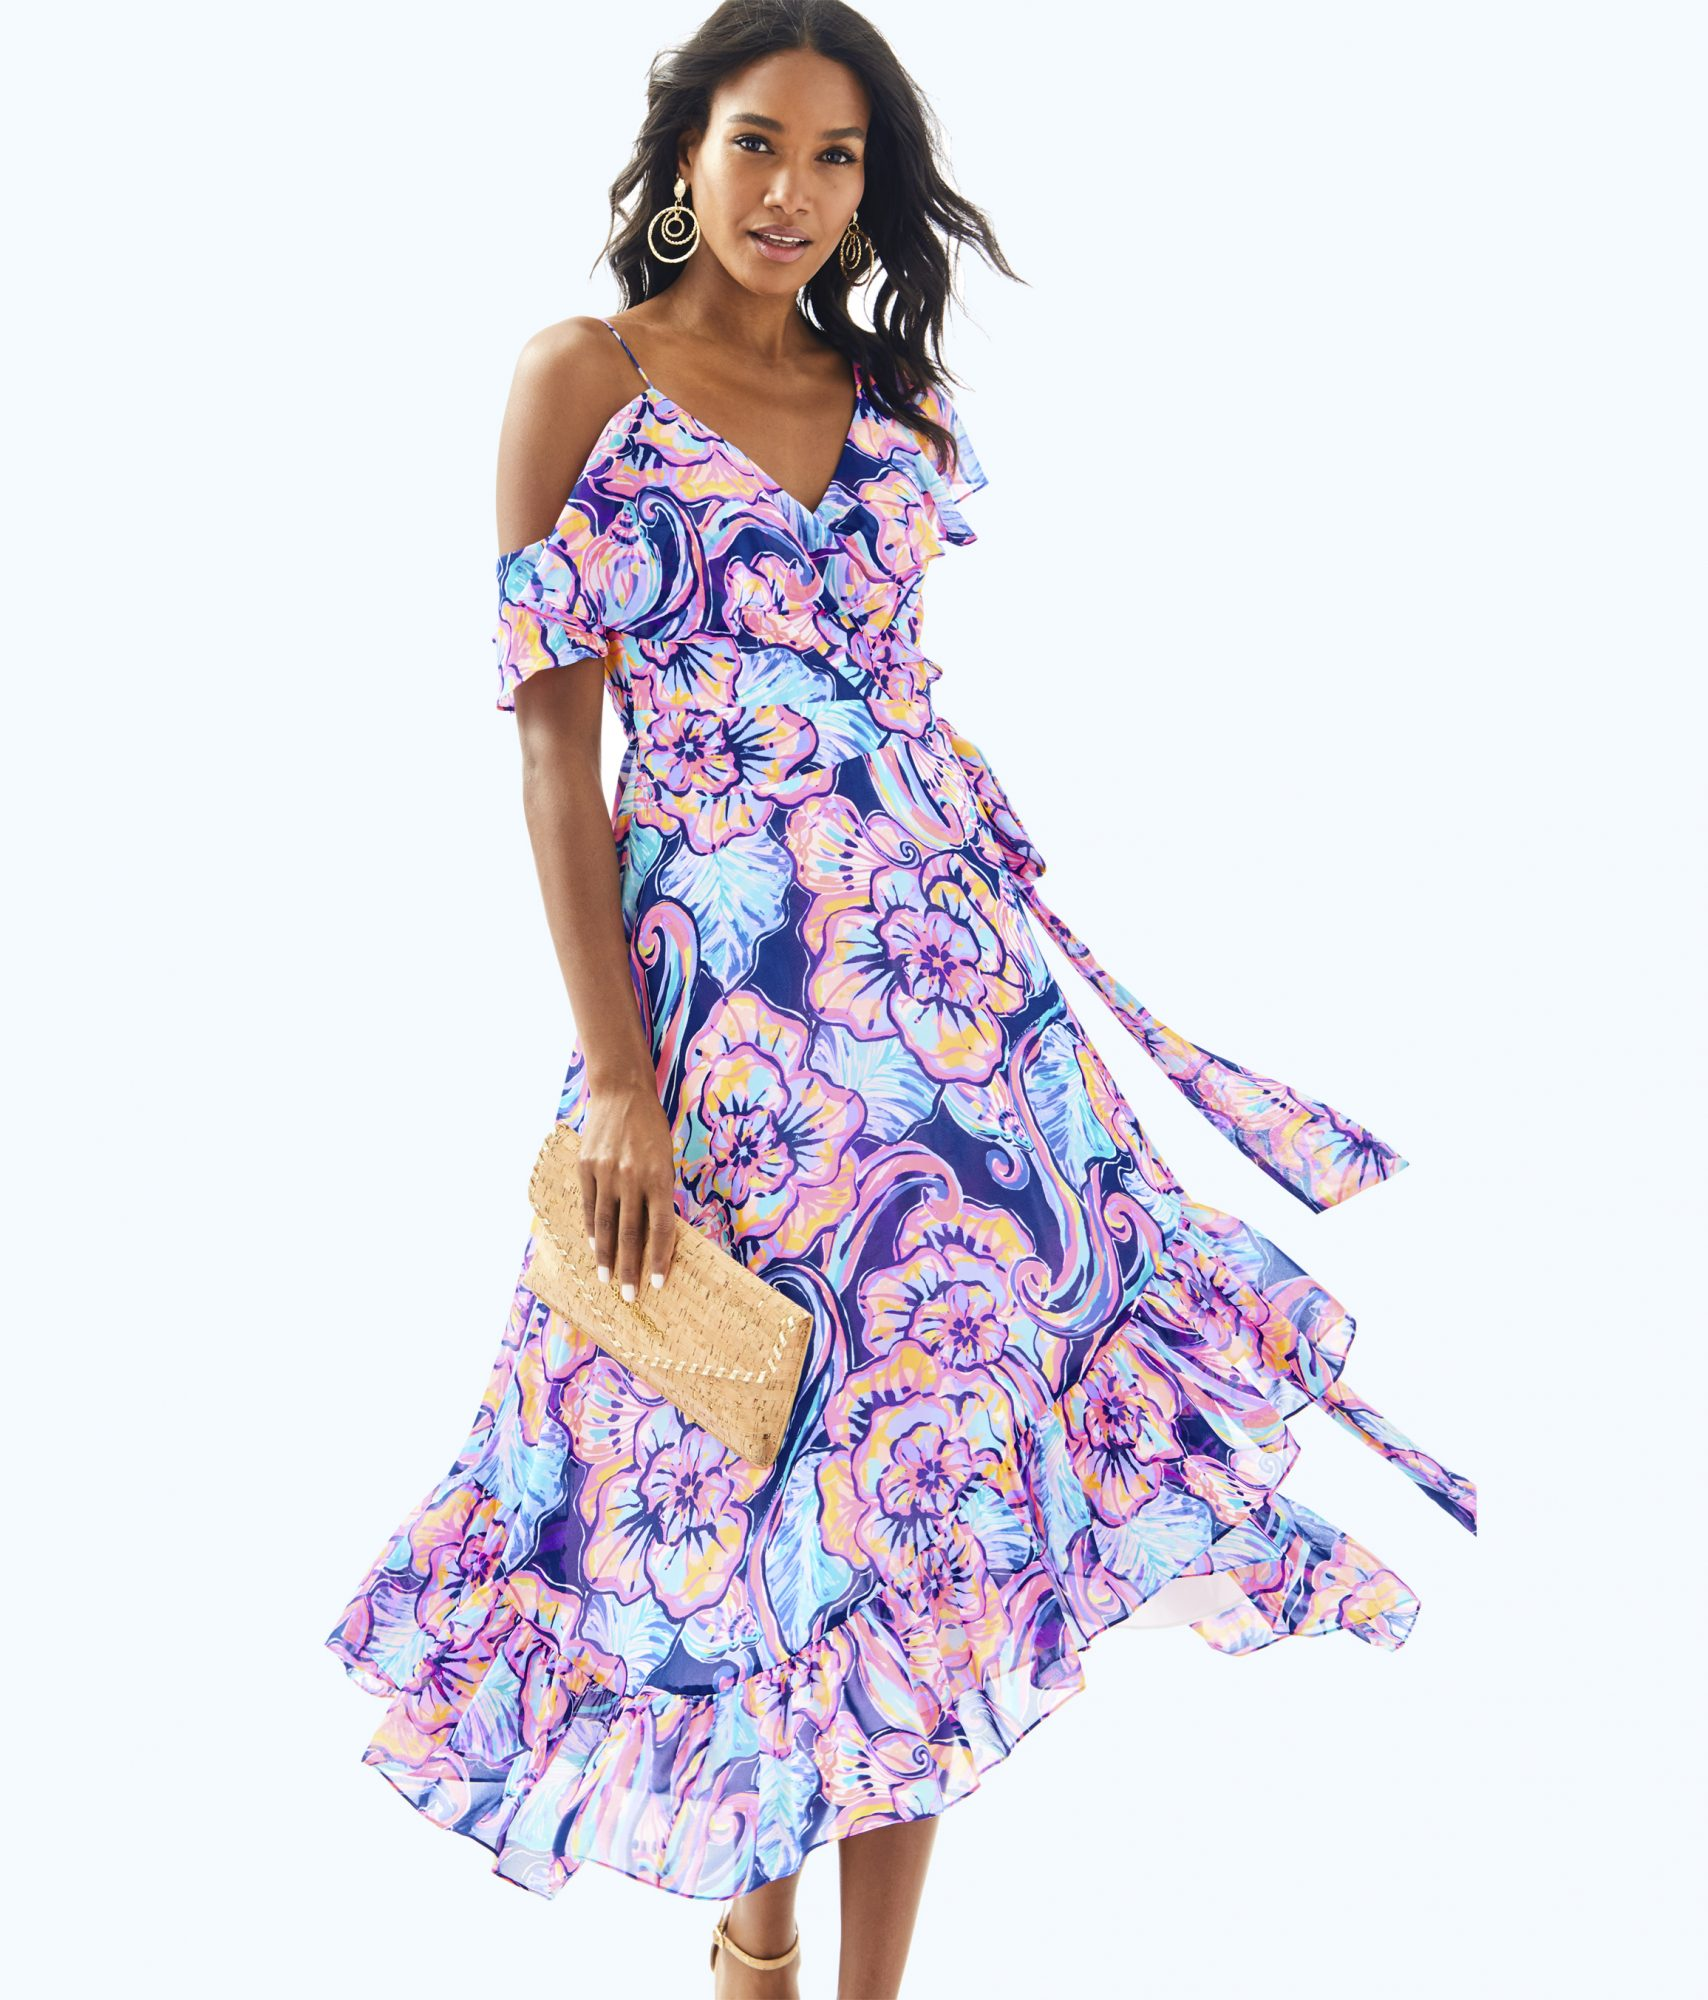 Lilly Pulitzer's Summer Collection Just Launched, Here's Everything We're Buying ASAP lilly-p-dress